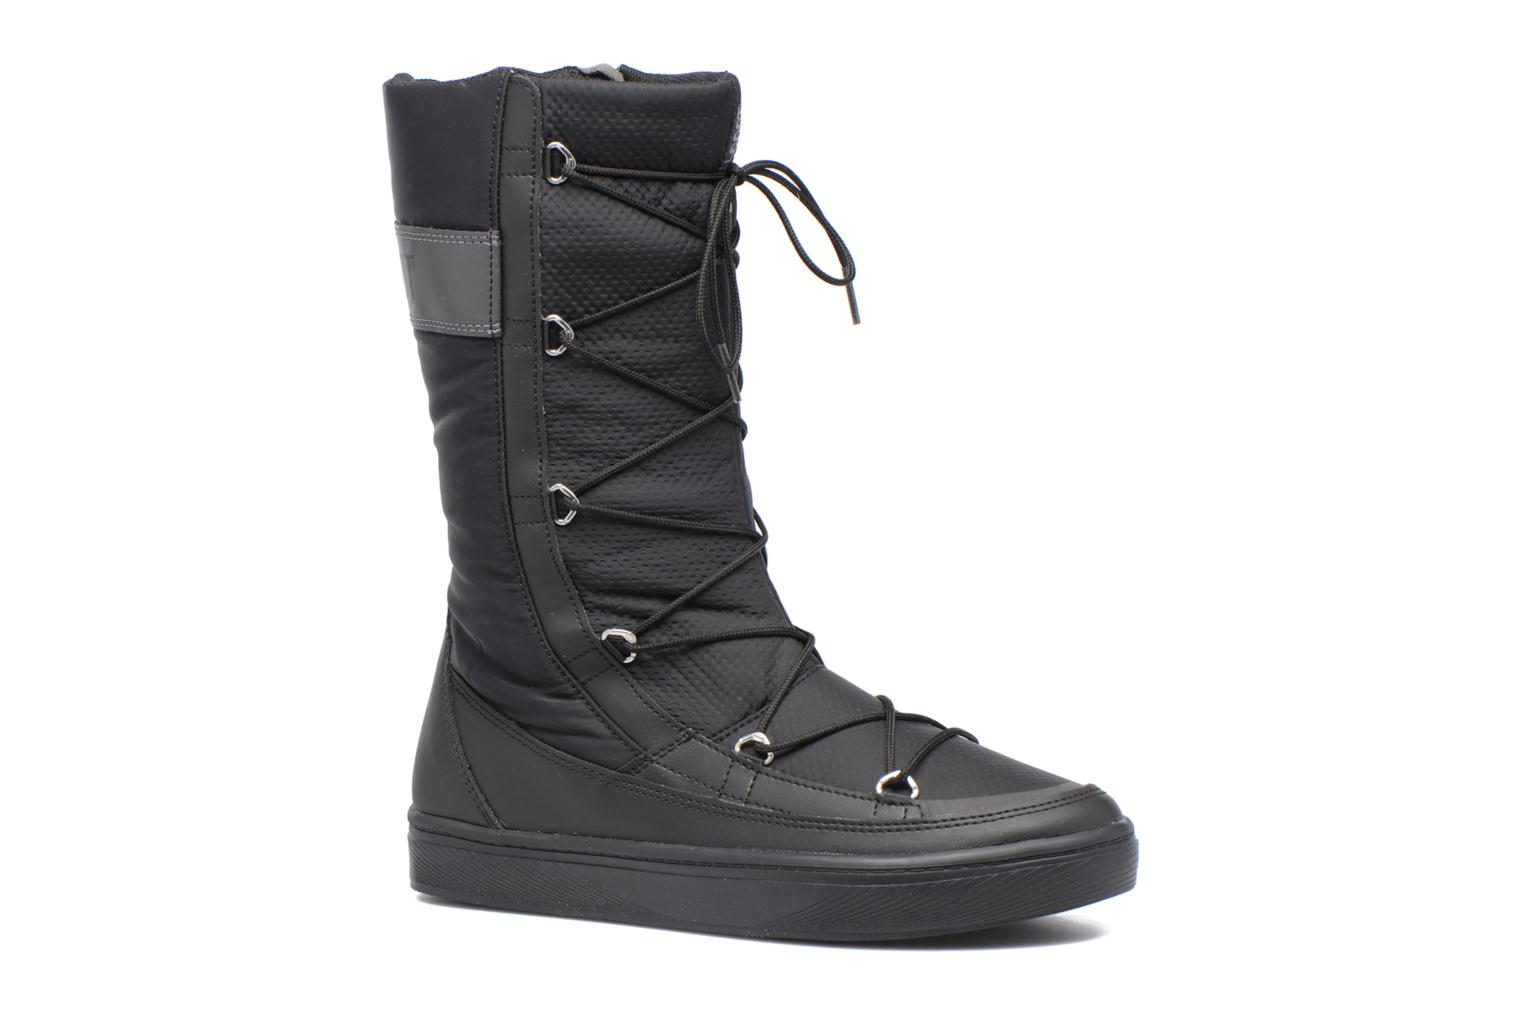 Moon Boot Vega Hi by Moon BootRebajas - 30%